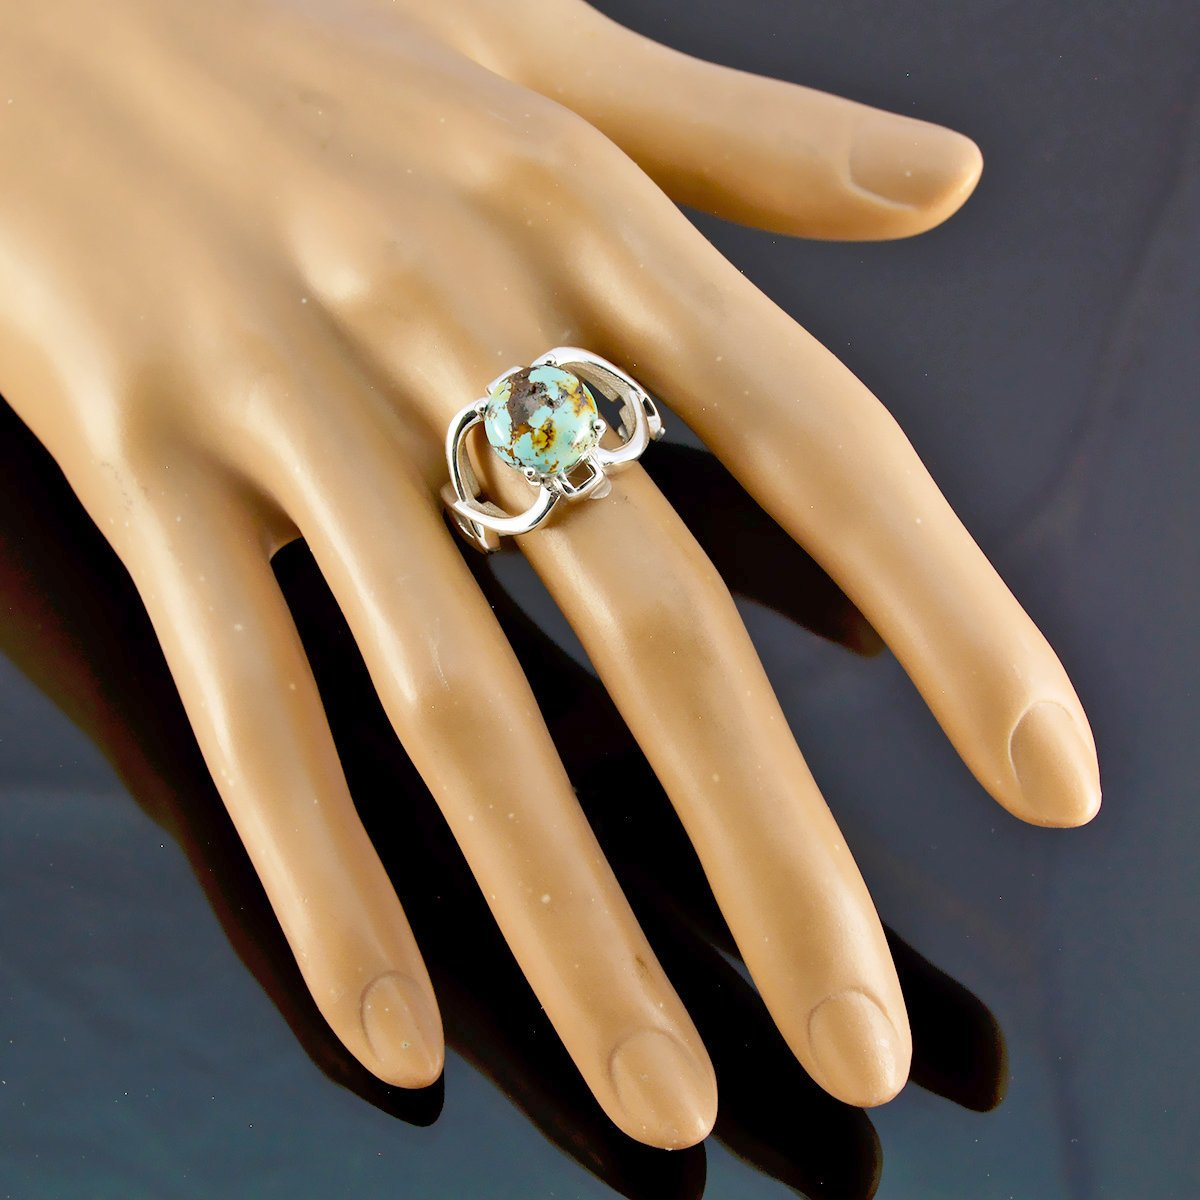 Most Jewellery Good Seller Gift for Anniversary Most Rings 925 Silver Blue Turquoise Real Gemstones Ring Real Gemstones Round cabochon Turquoise Ring